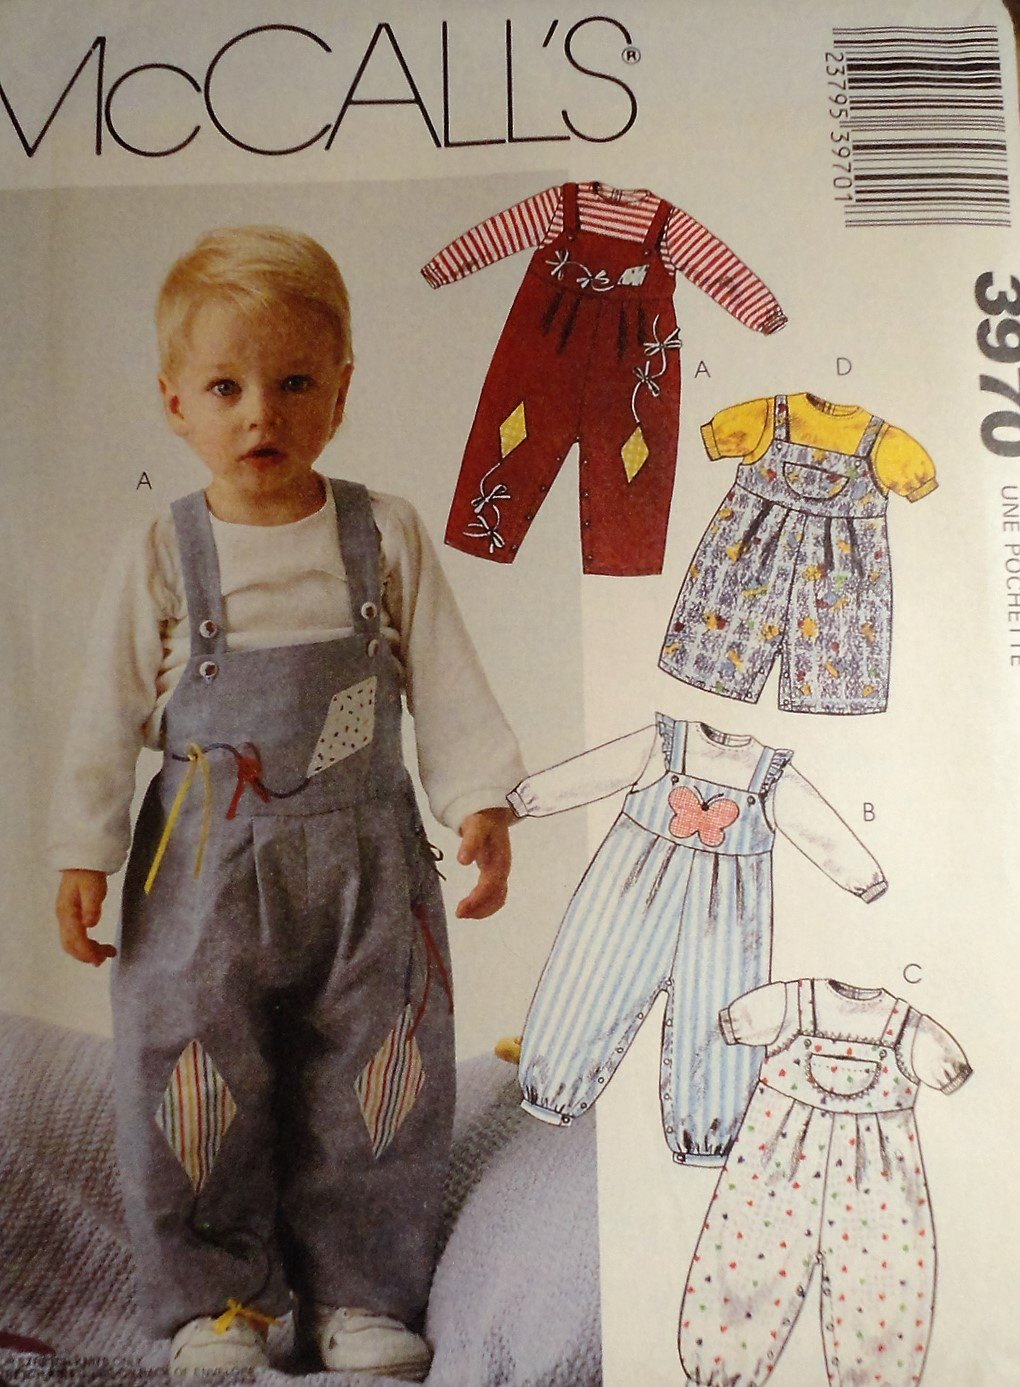 McCall's 3970 Infant, Toddler overalls and top pattern sizes small, medium, large